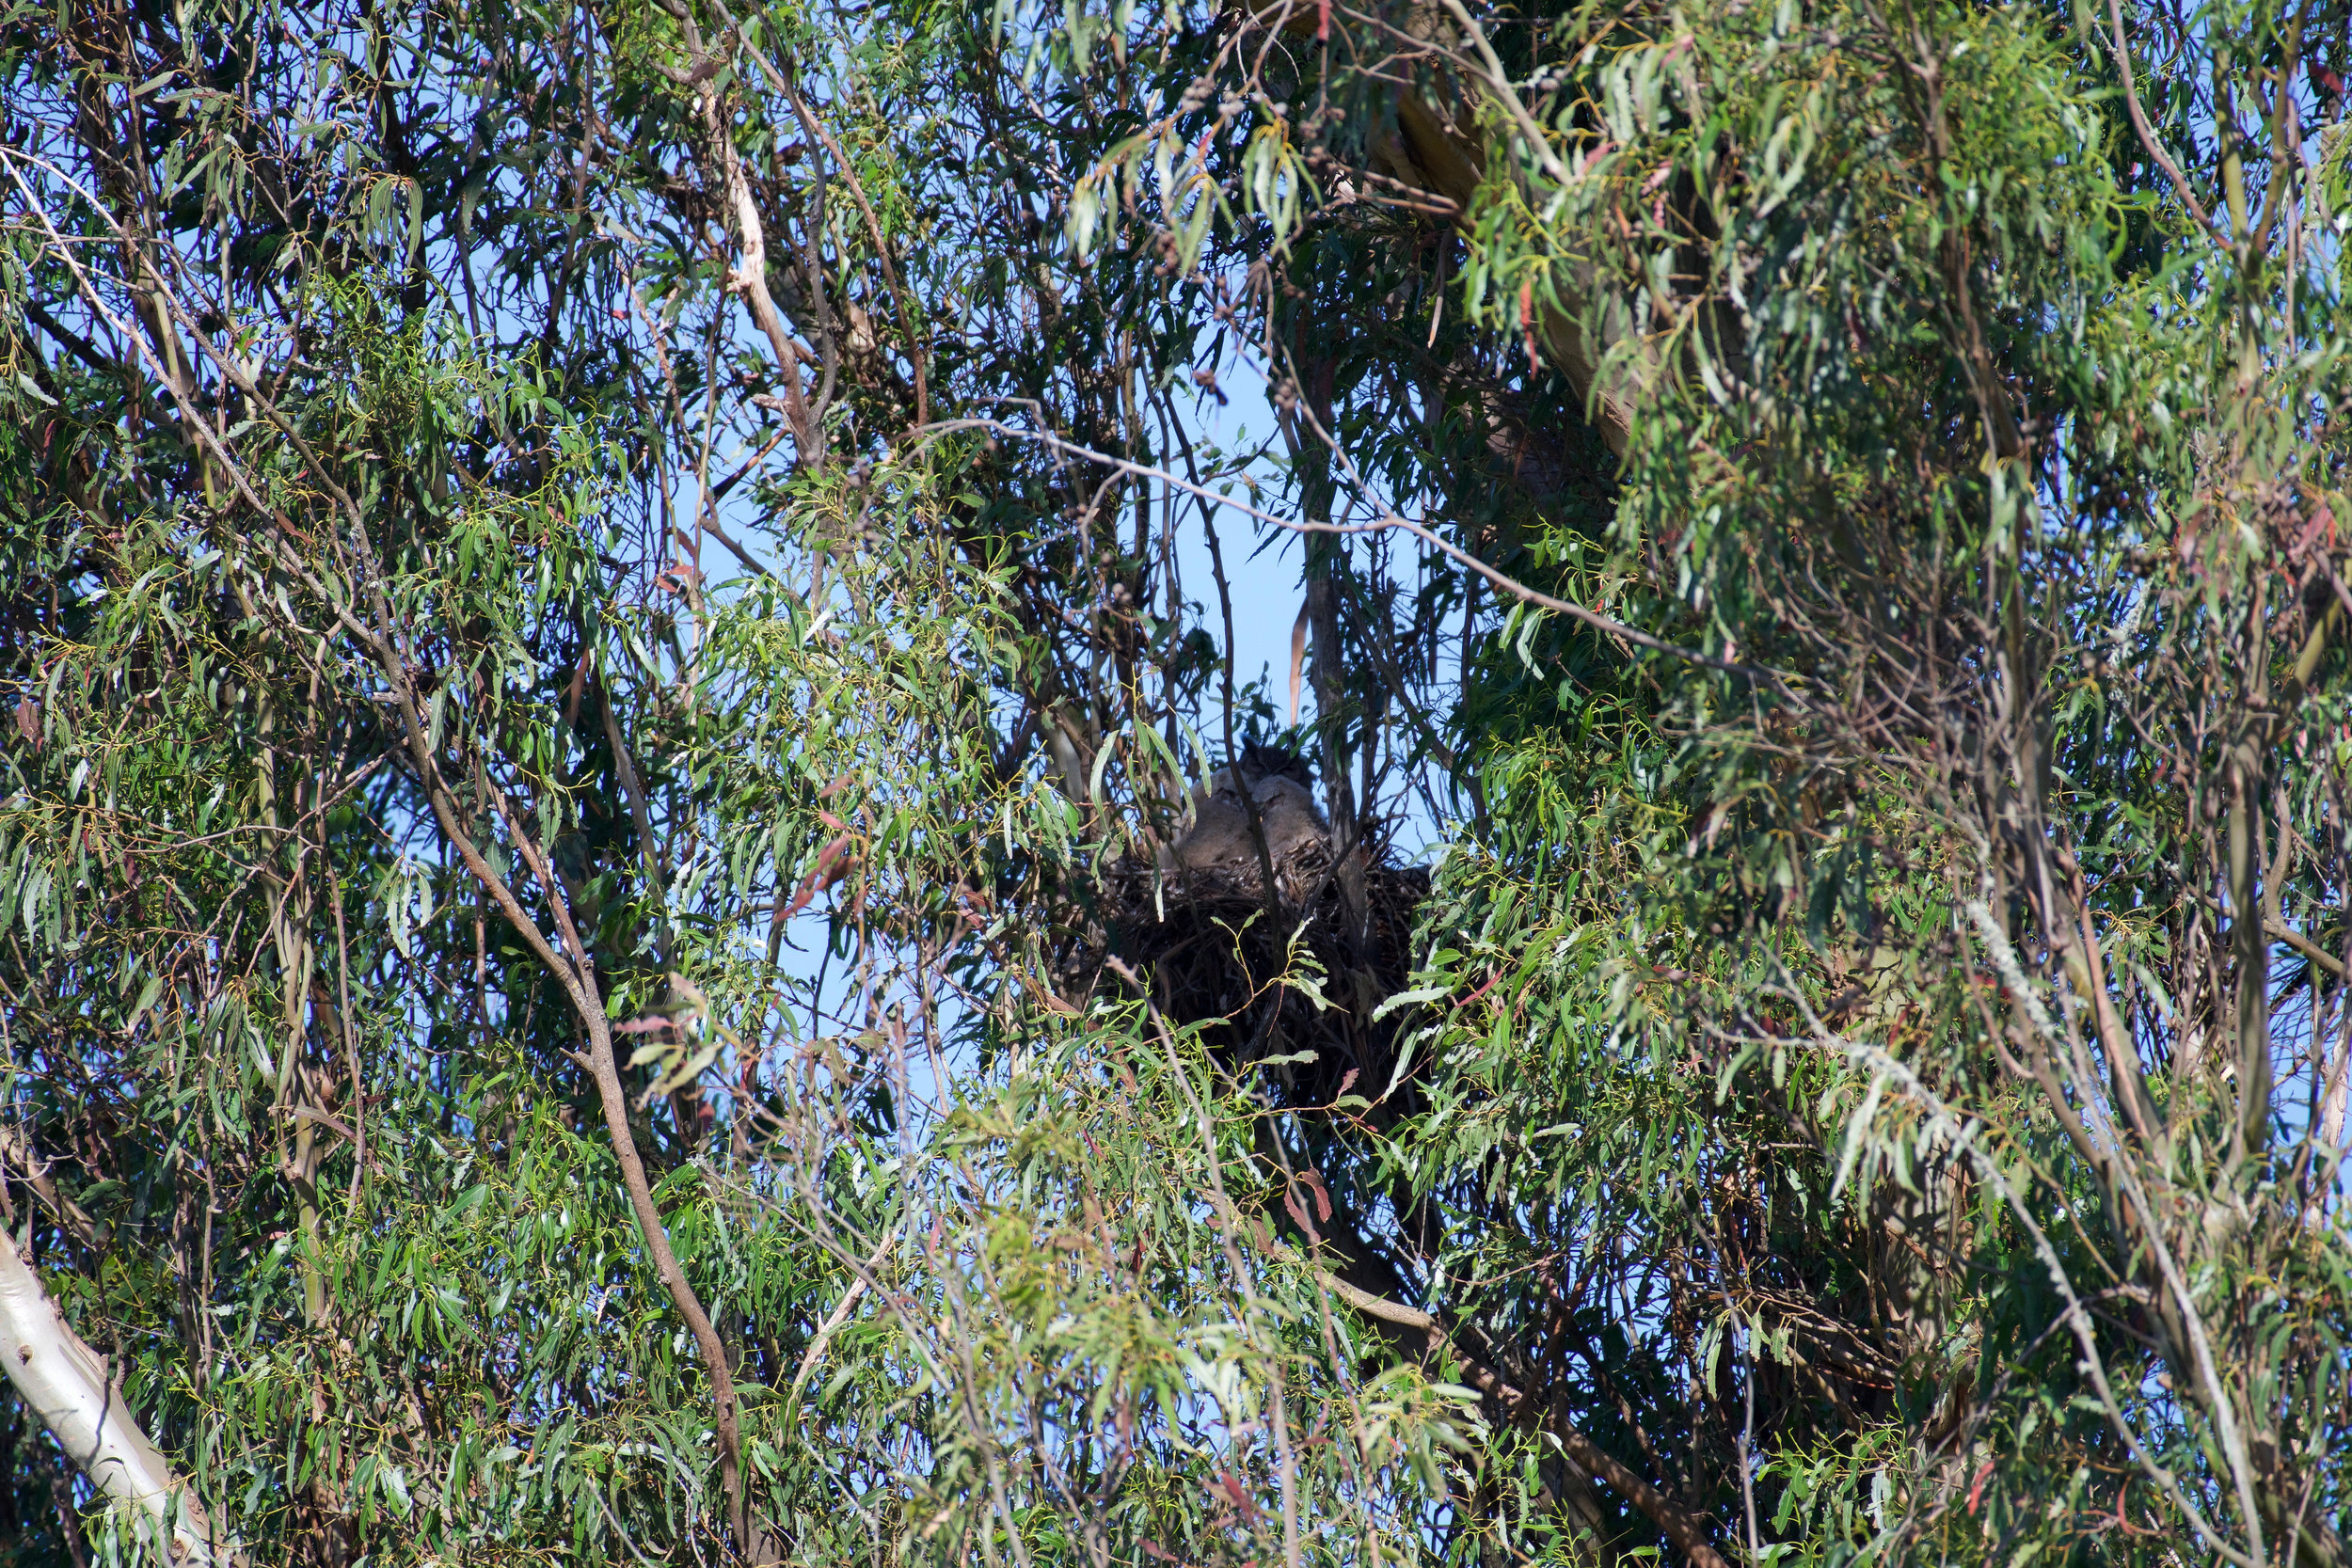 A mother great horned owls with her two baby owls safely hidden in their nest